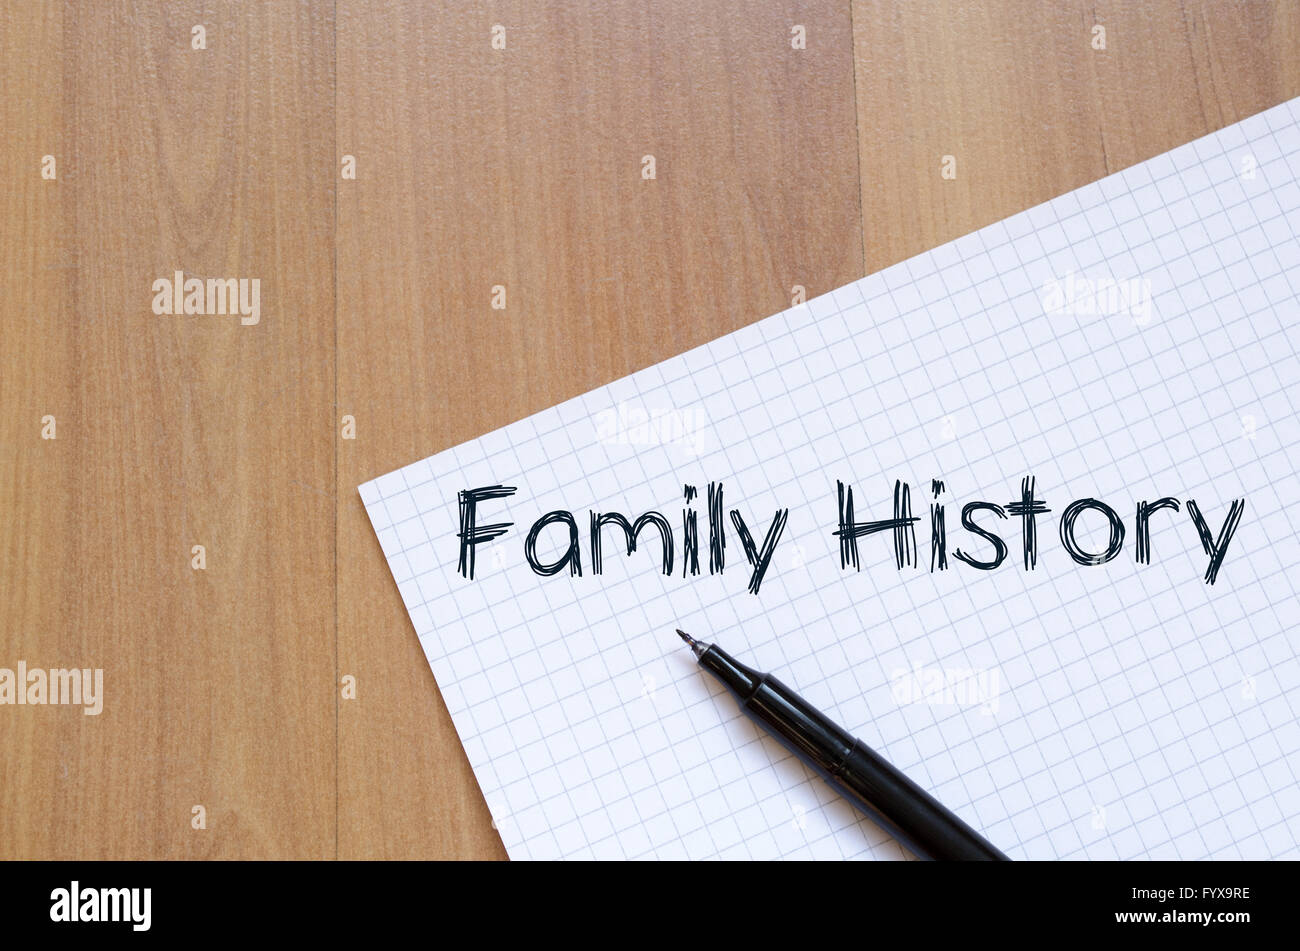 Family history write on notebook - Stock Image